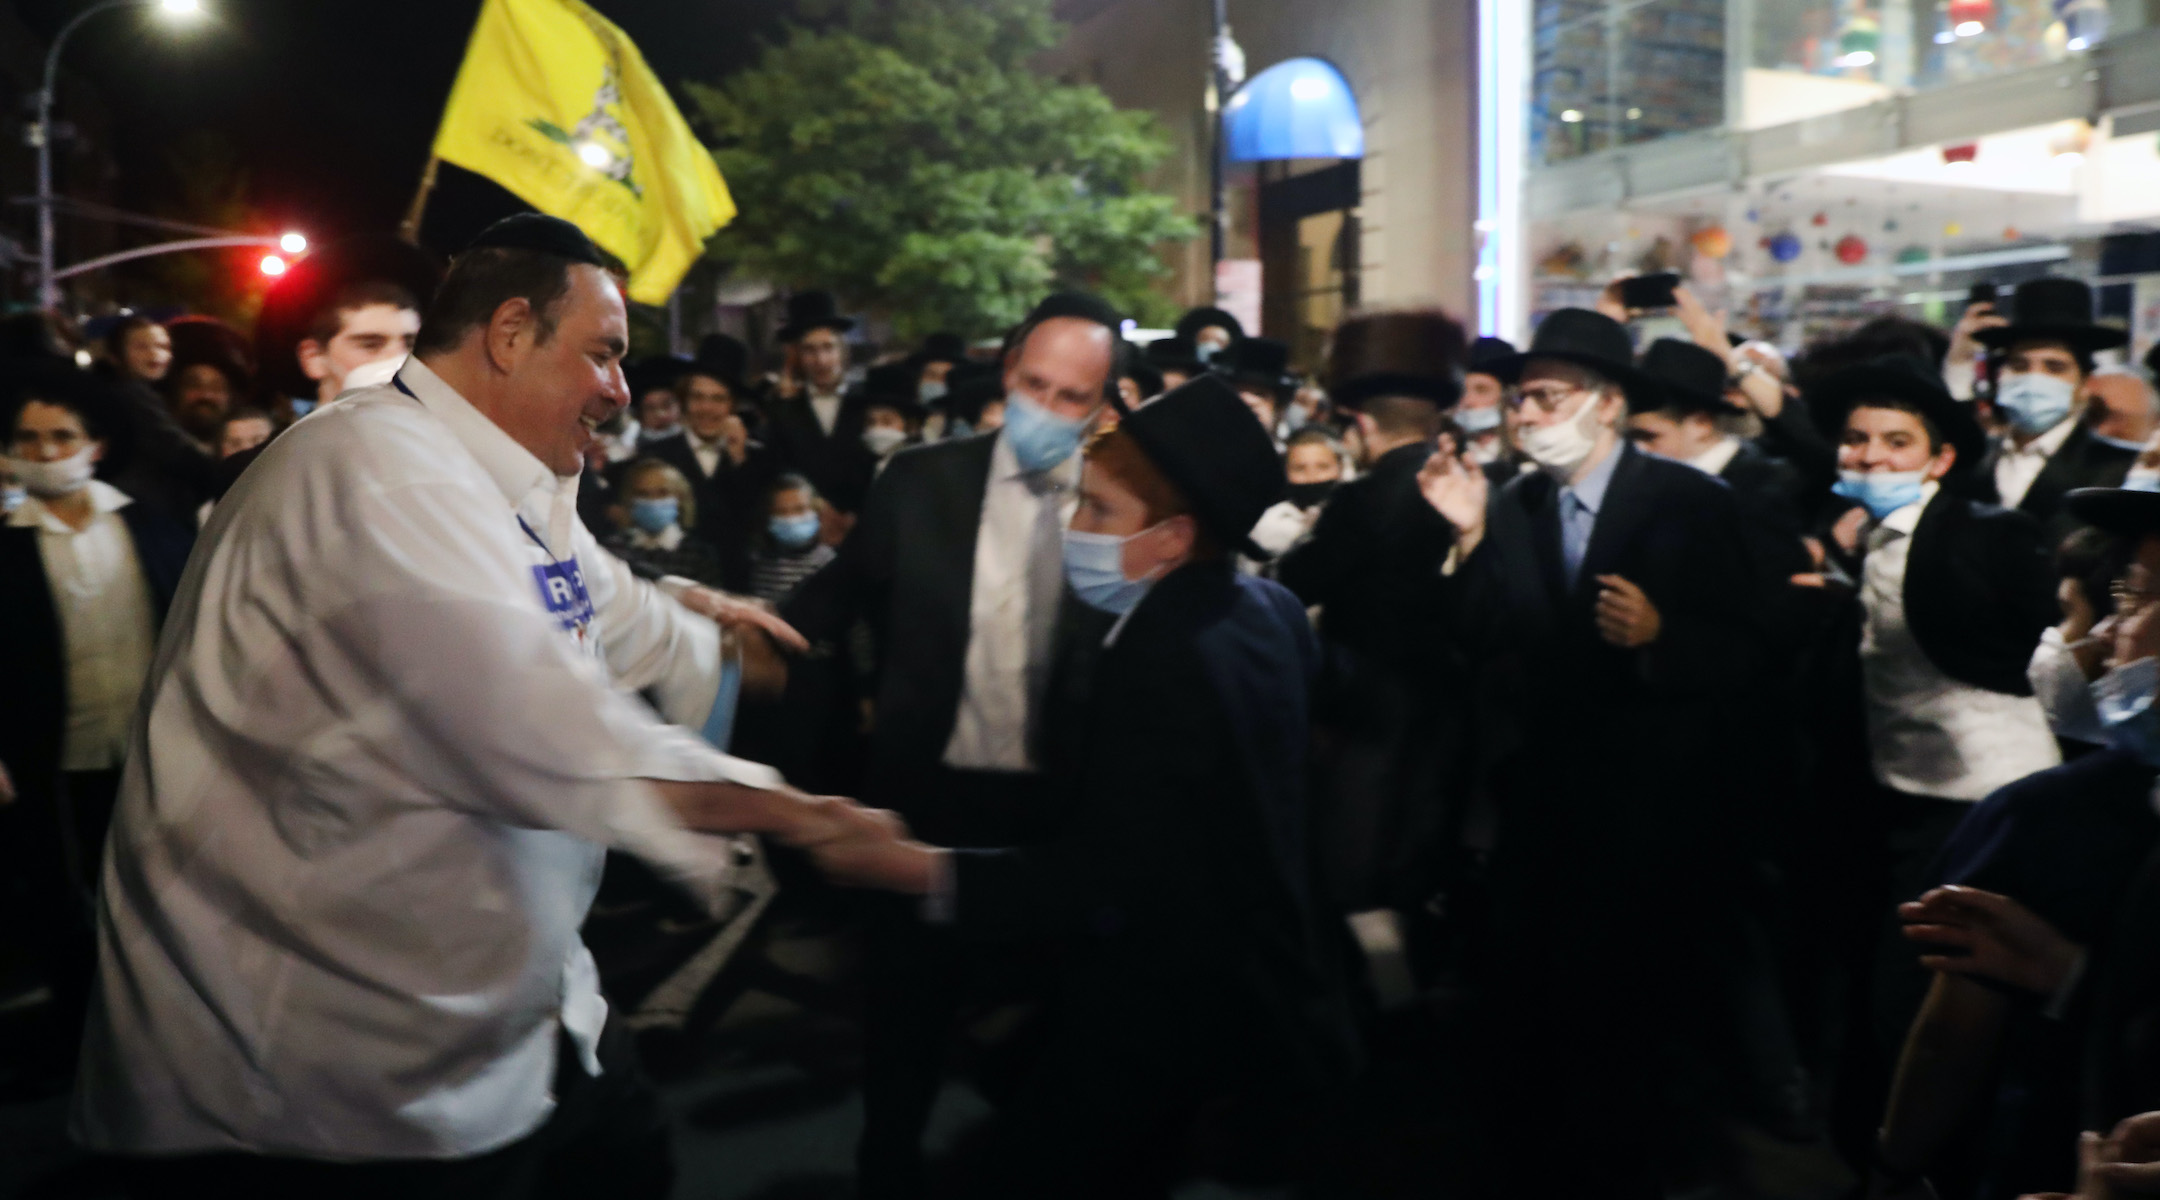 Pleading guilty to inciting a riot in Brooklyn, Heshy Tischler sentenced to 10 days of...